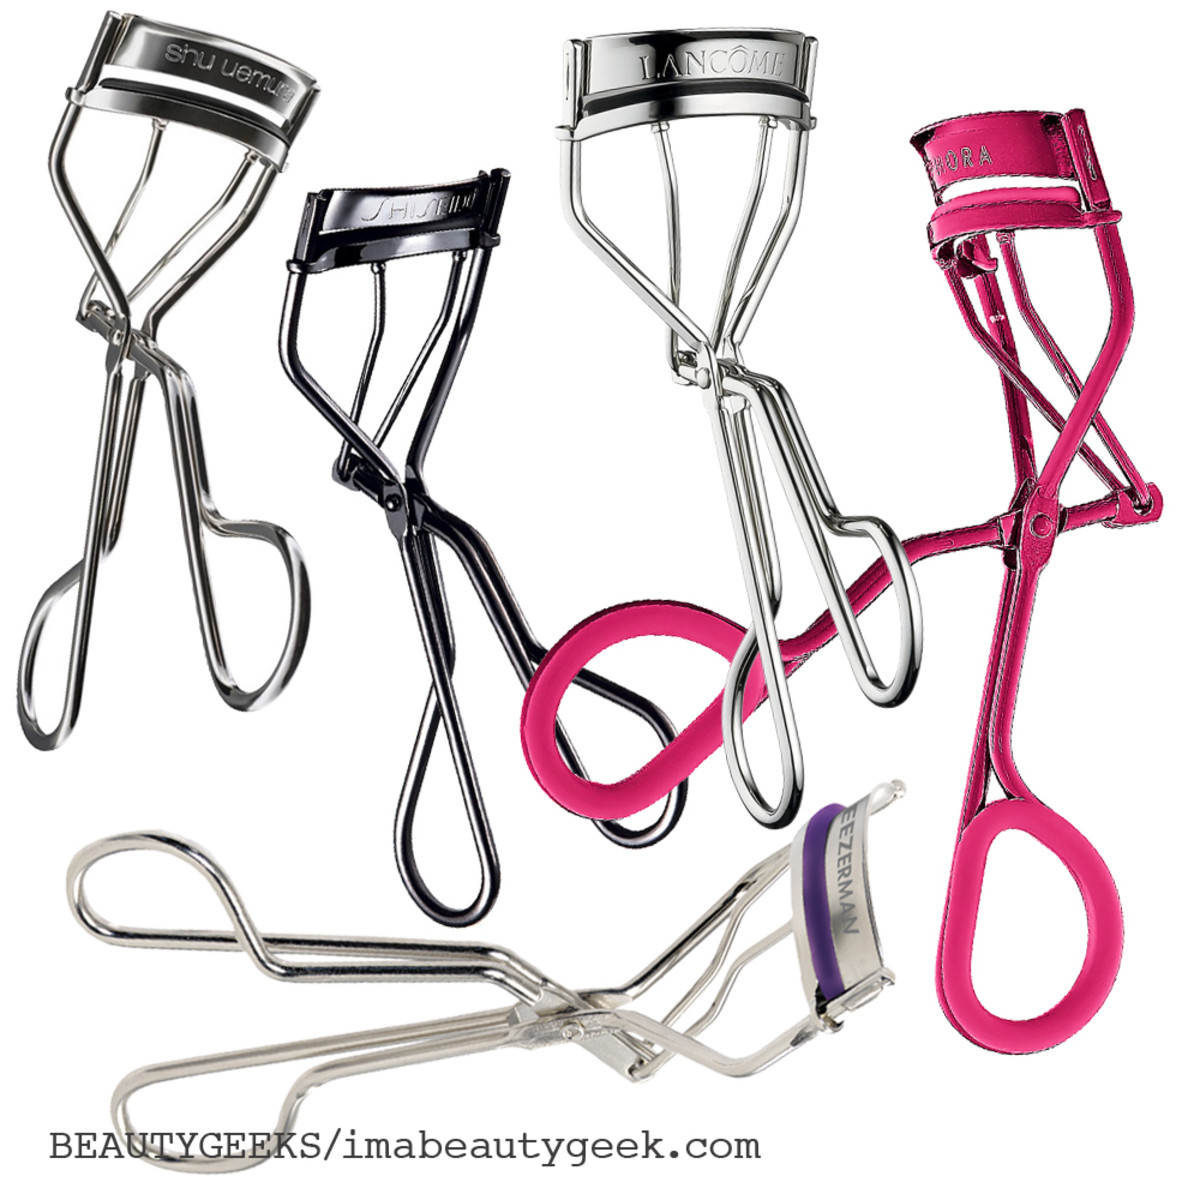 Beautygeeks favourite eyelash curlers.